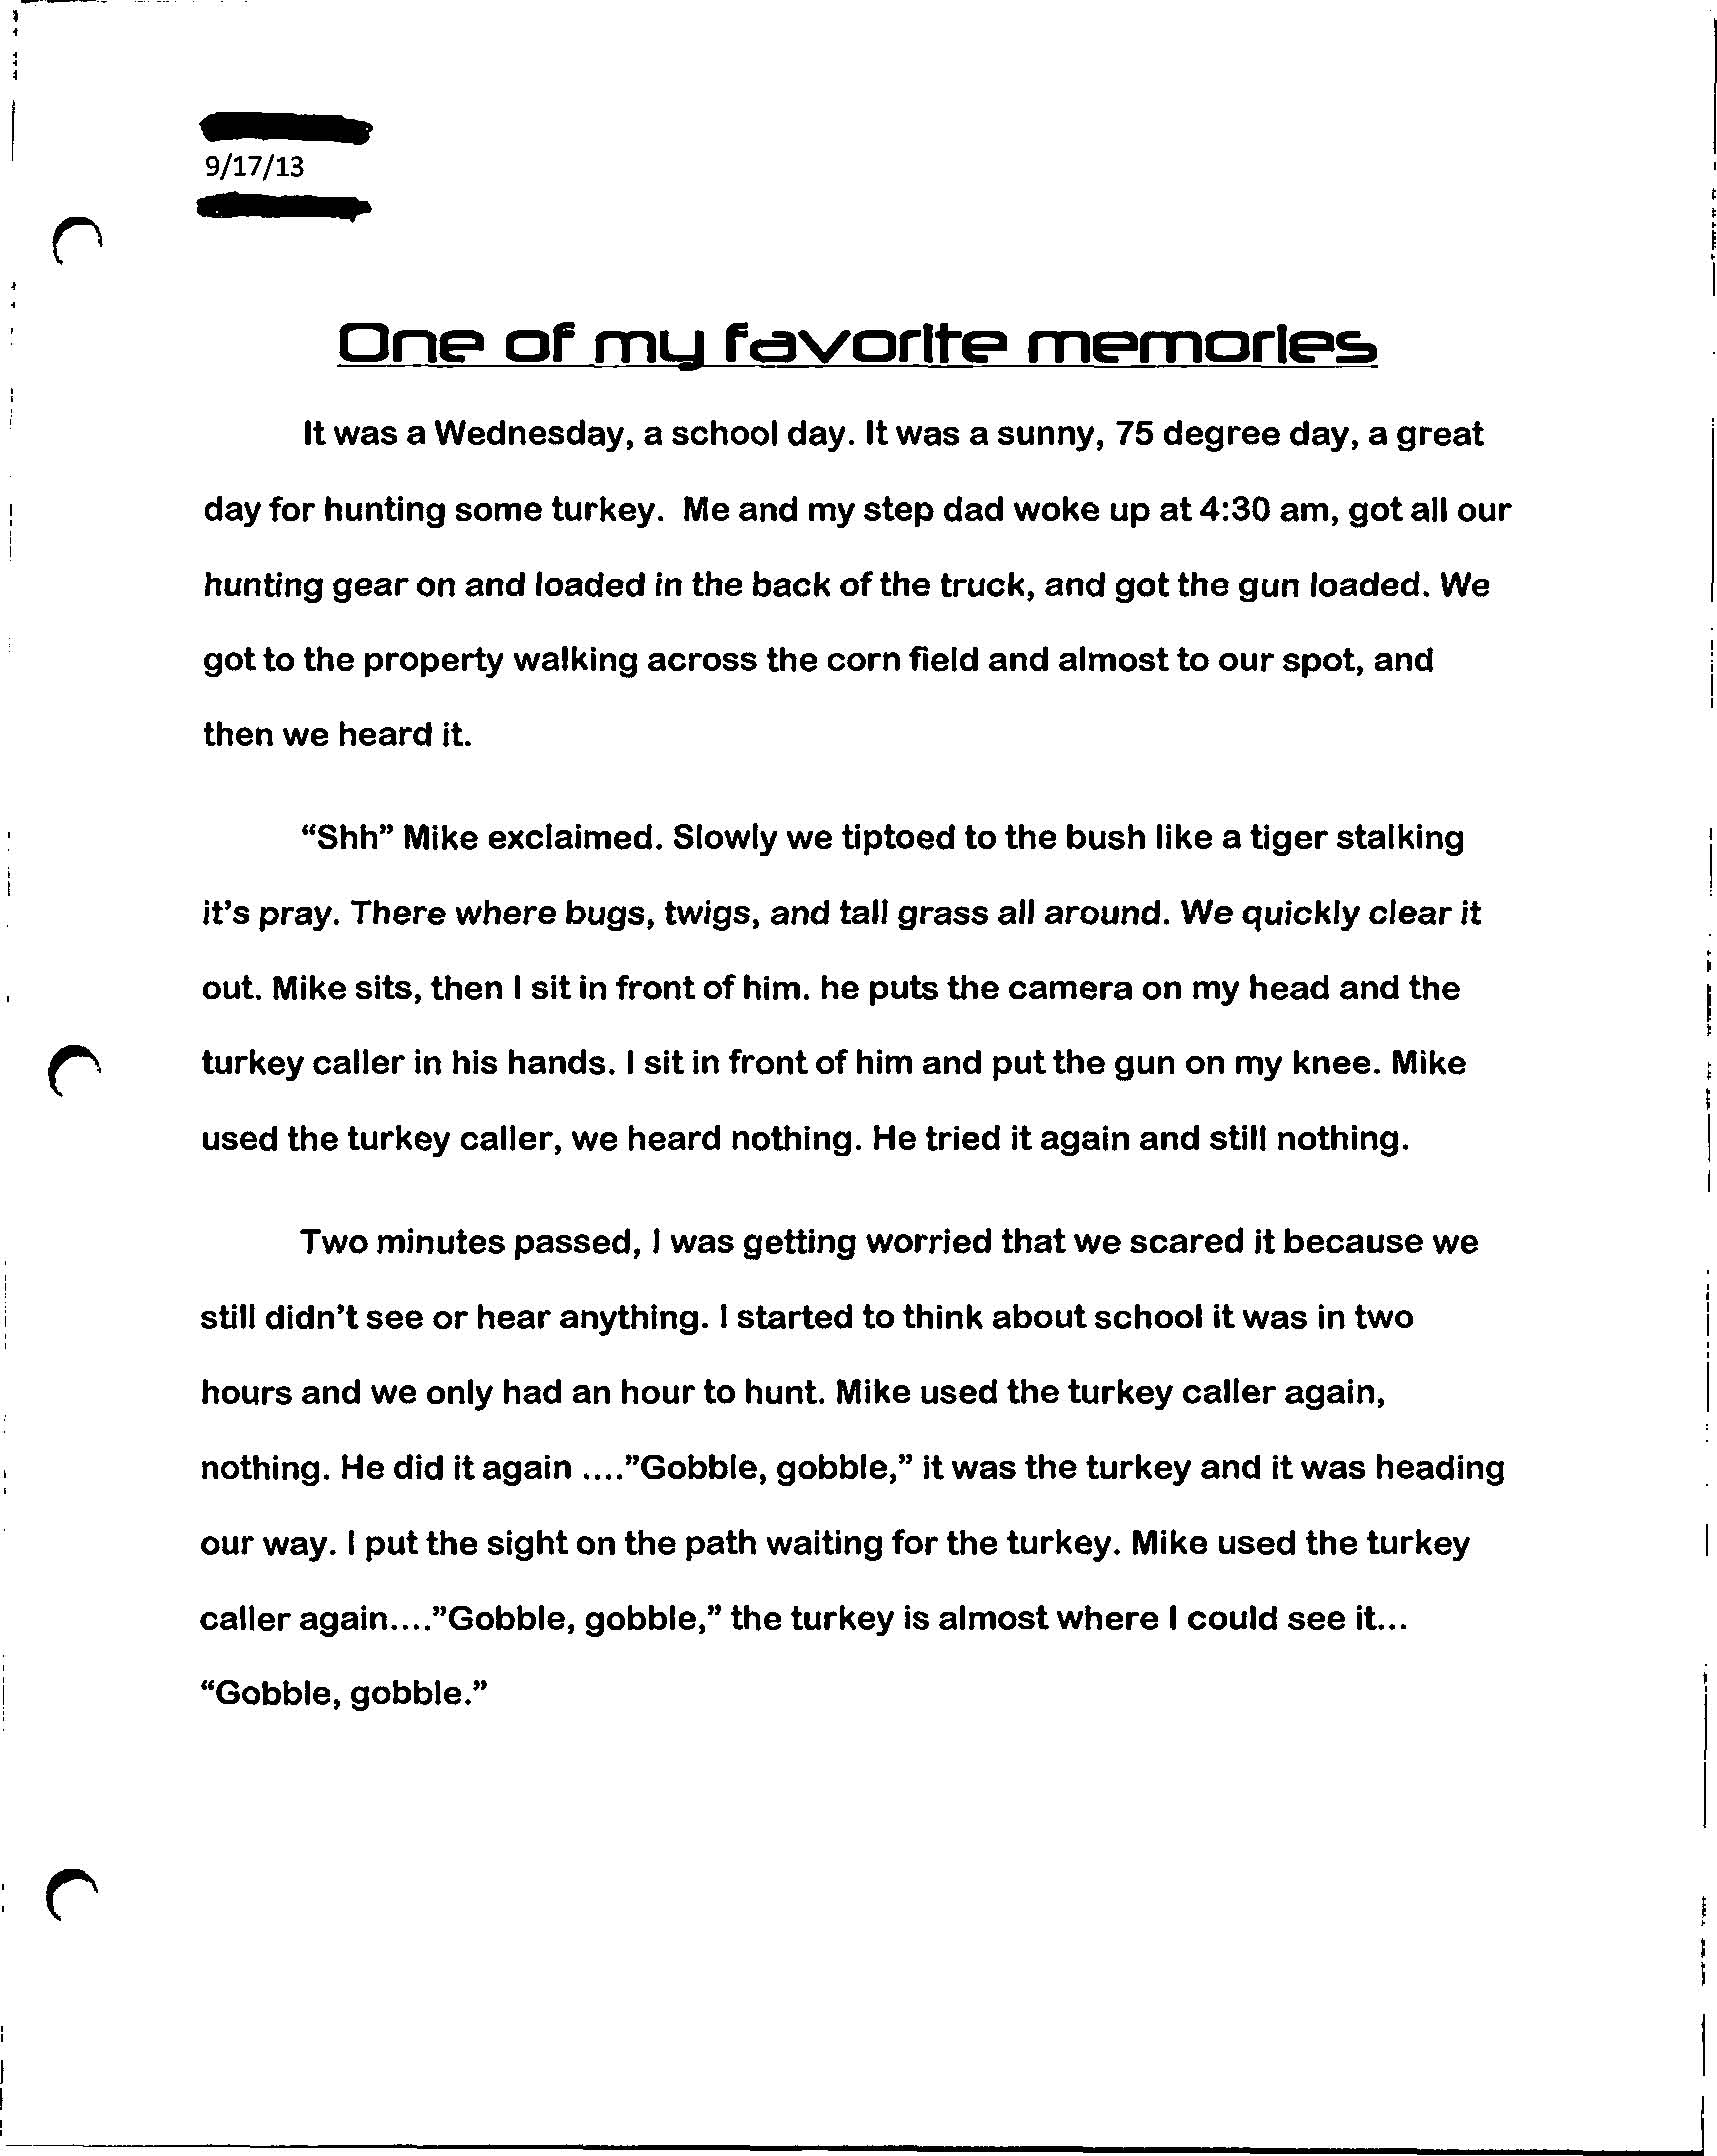 002 Paperexample2 Page 1 Essay Example Who Am I Amazing Examples For Students College How To Write A Good 'who I' Full